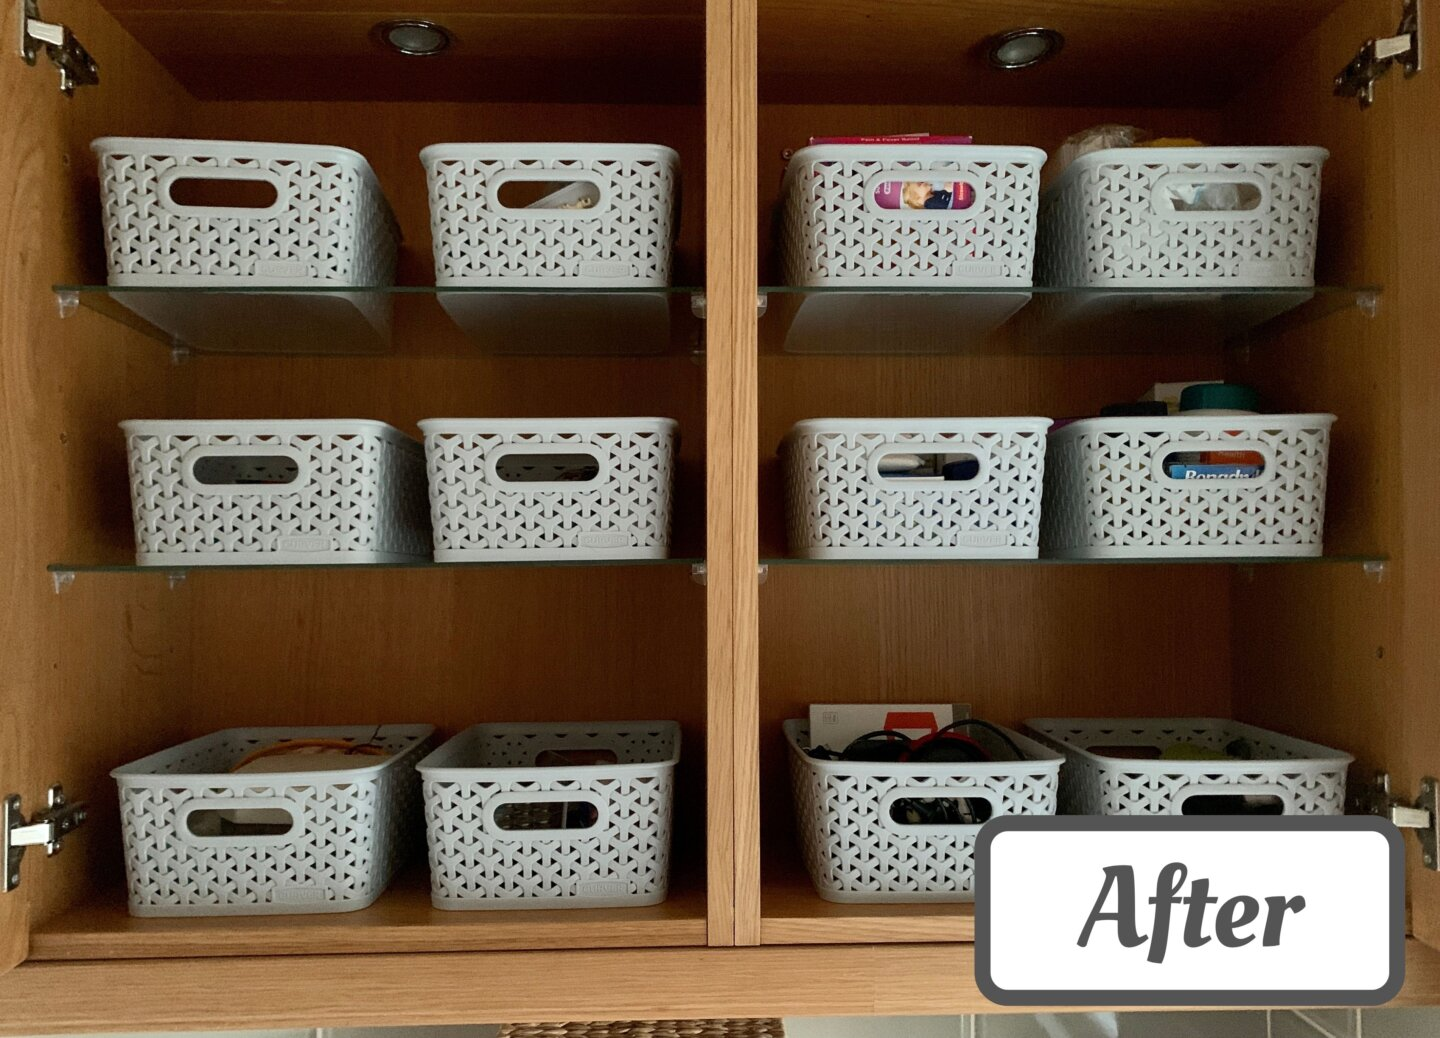 An image of a beautifully organised utility room cupboard with an 'after' sticker on it. 12 grey Curver baskets are arranged neatly across six shelves, with the contents placed neatly inside.